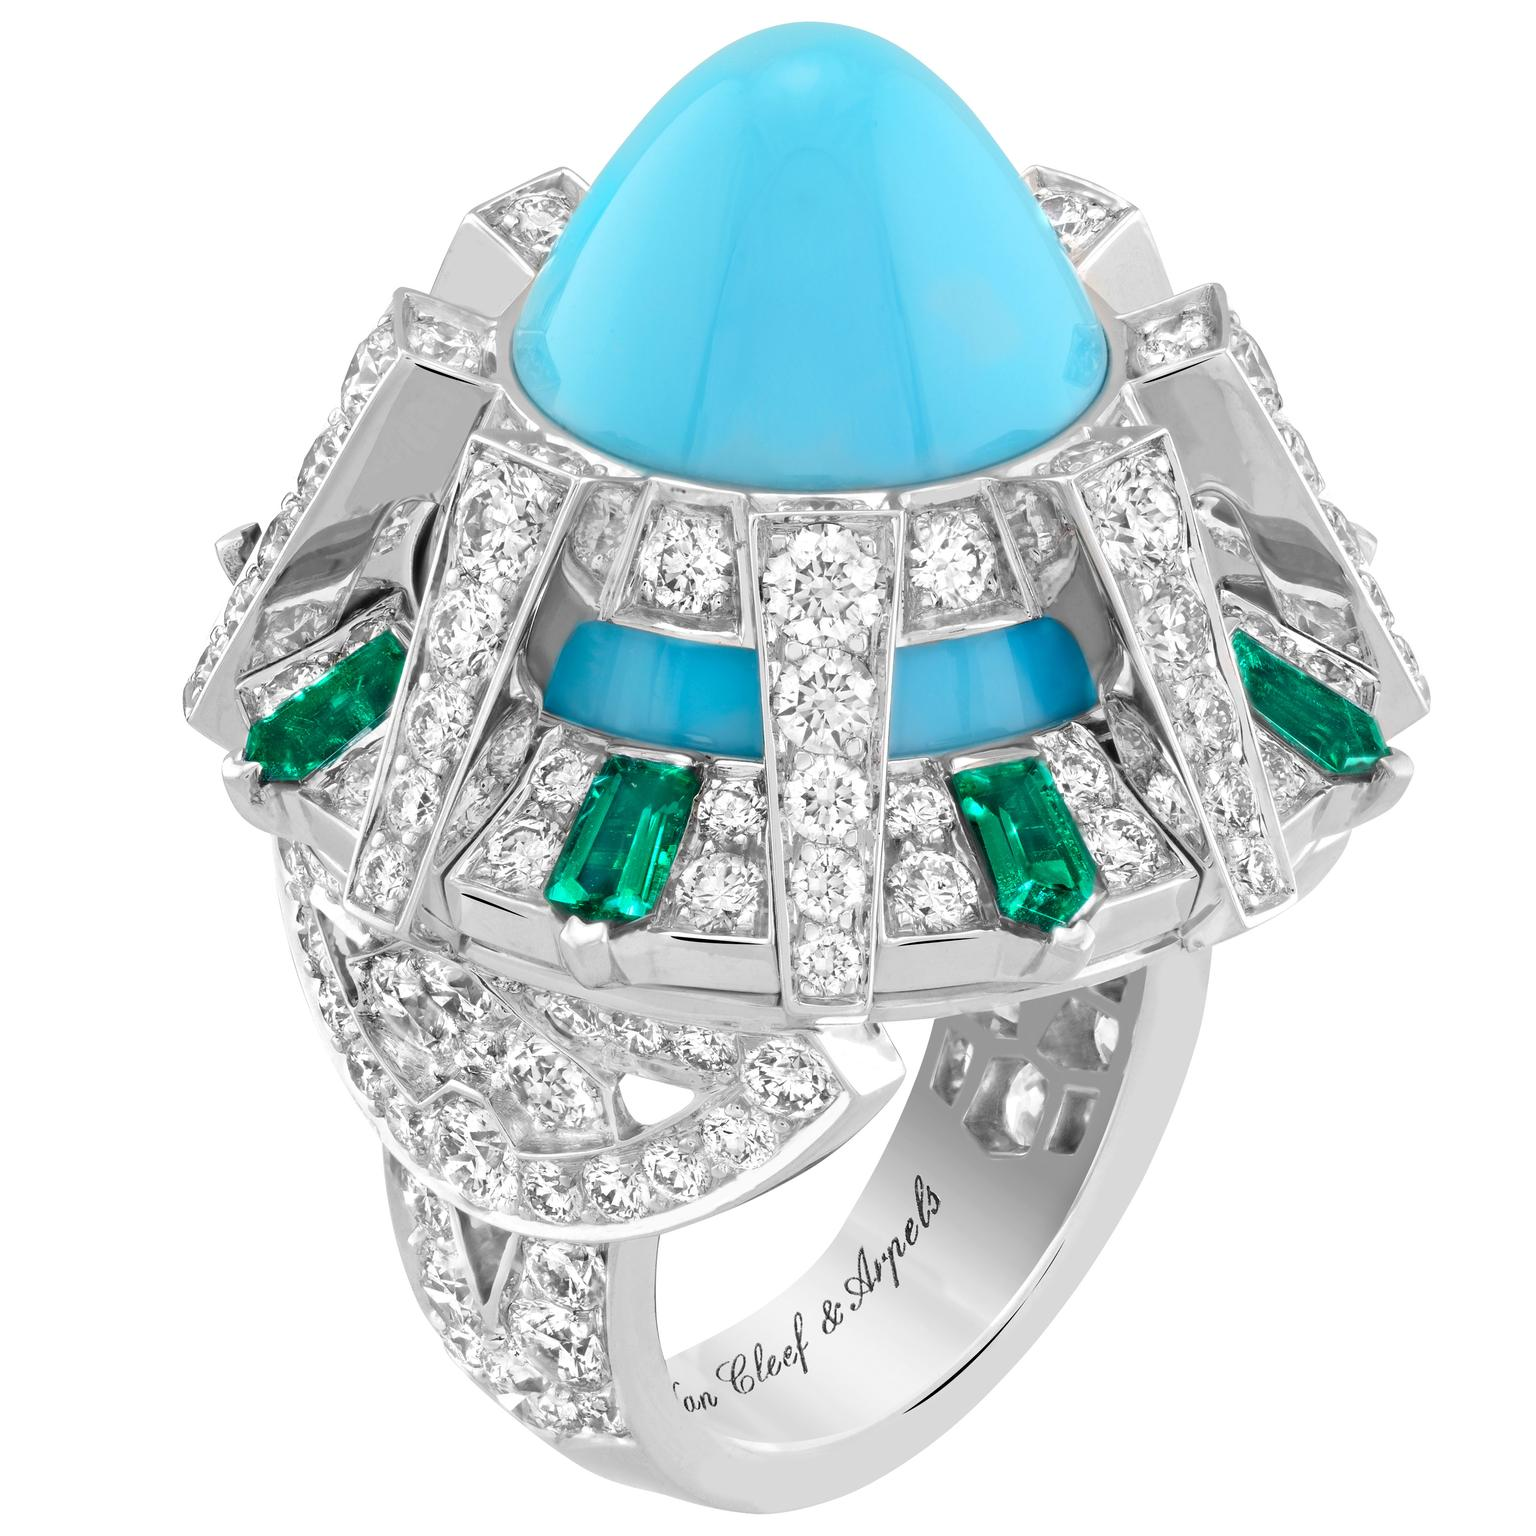 Temple turquoise ring by Van Cleef & Arpels